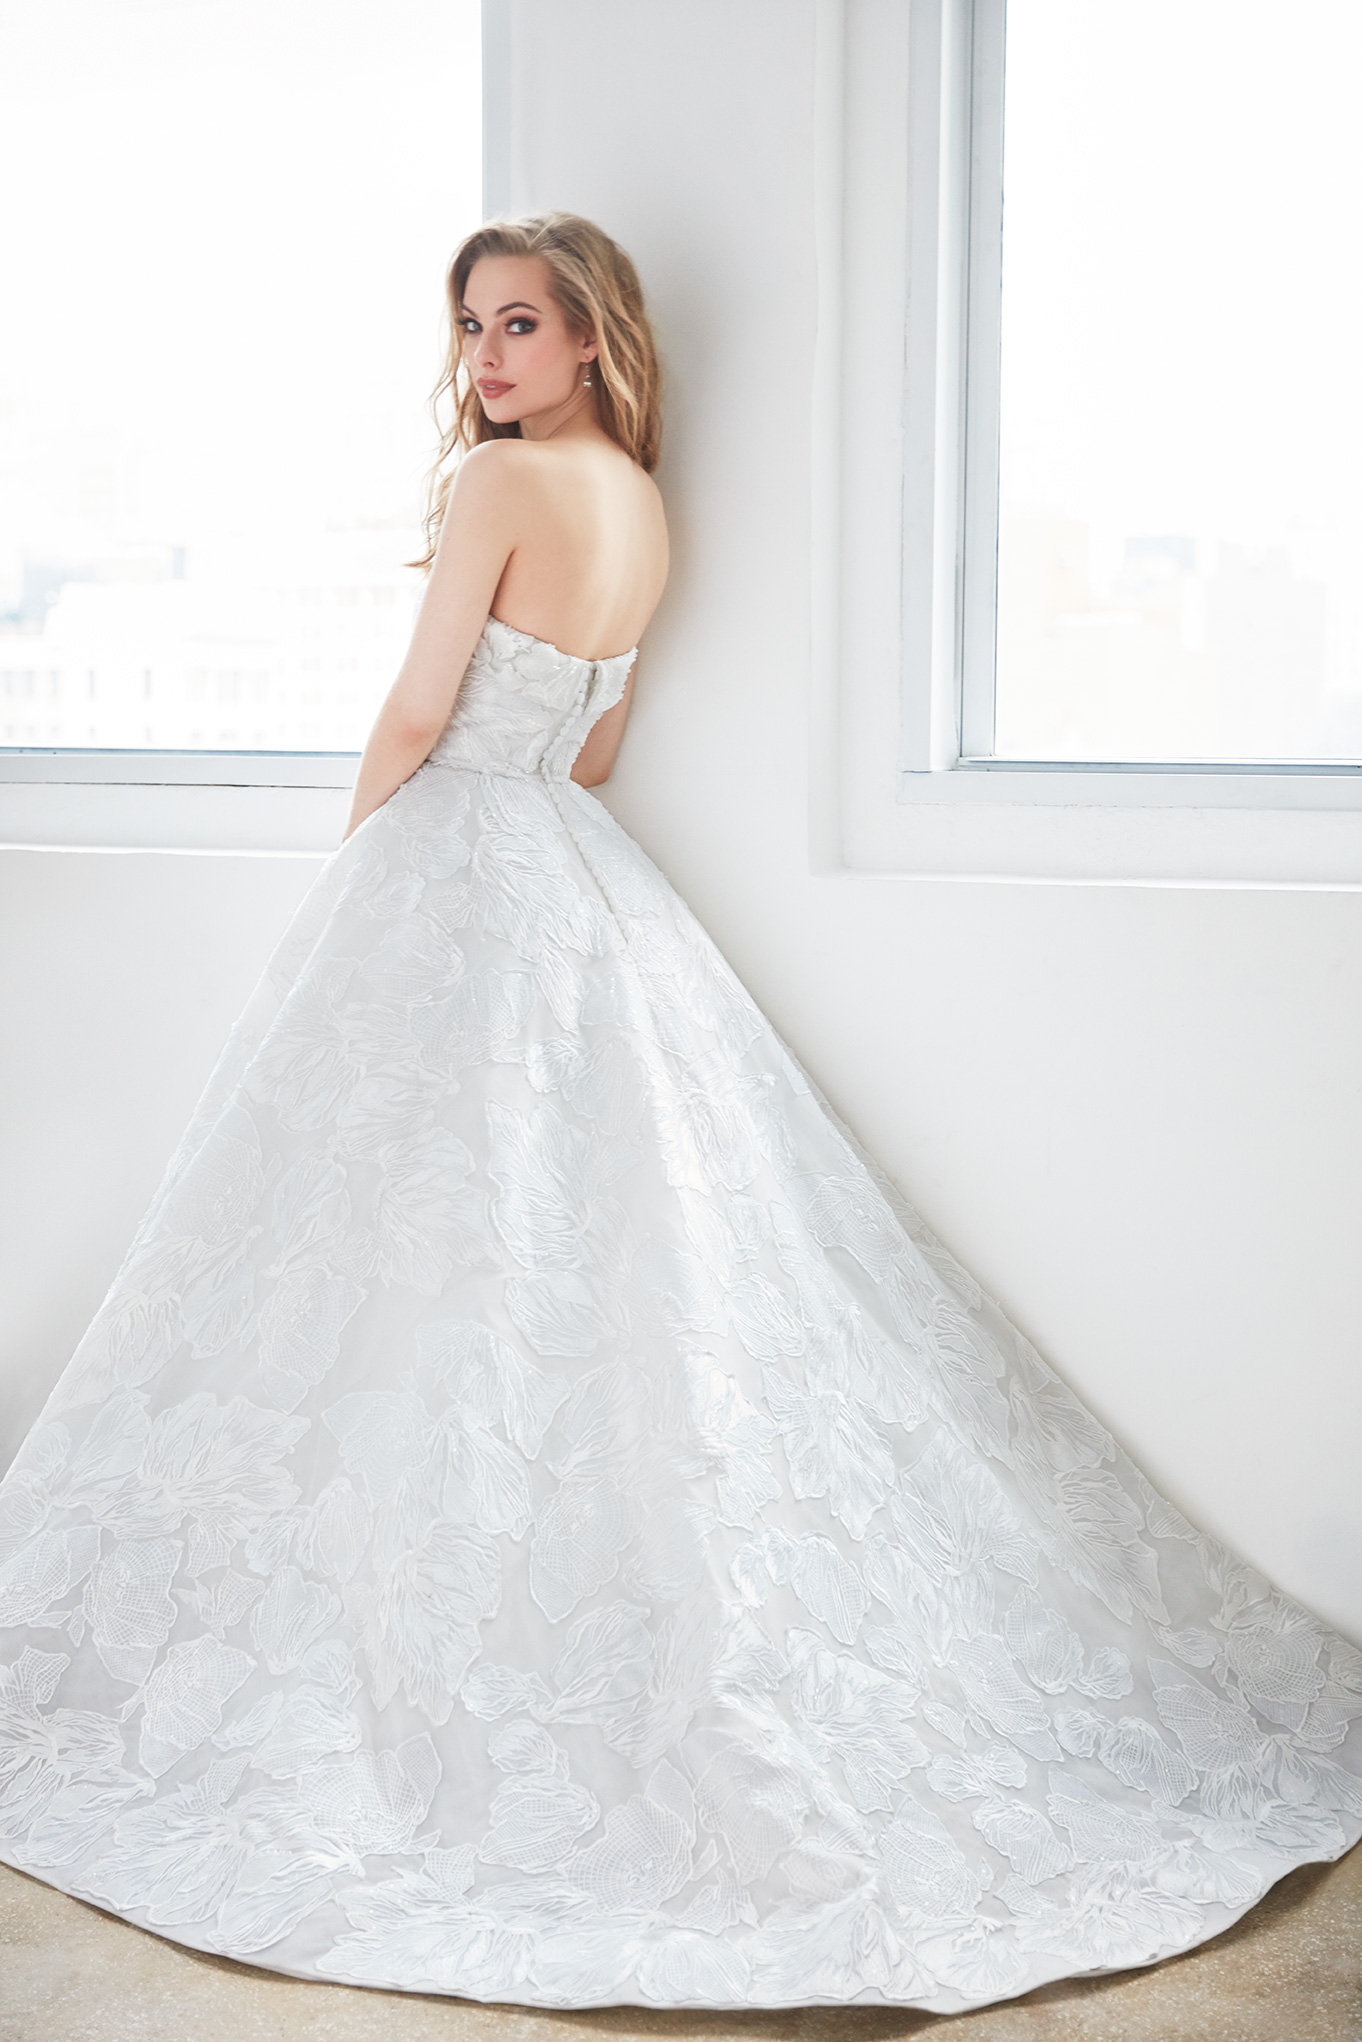 Straight Strapless Floral Lace Ball Gown Wedding Dress   Kleinfeld ...